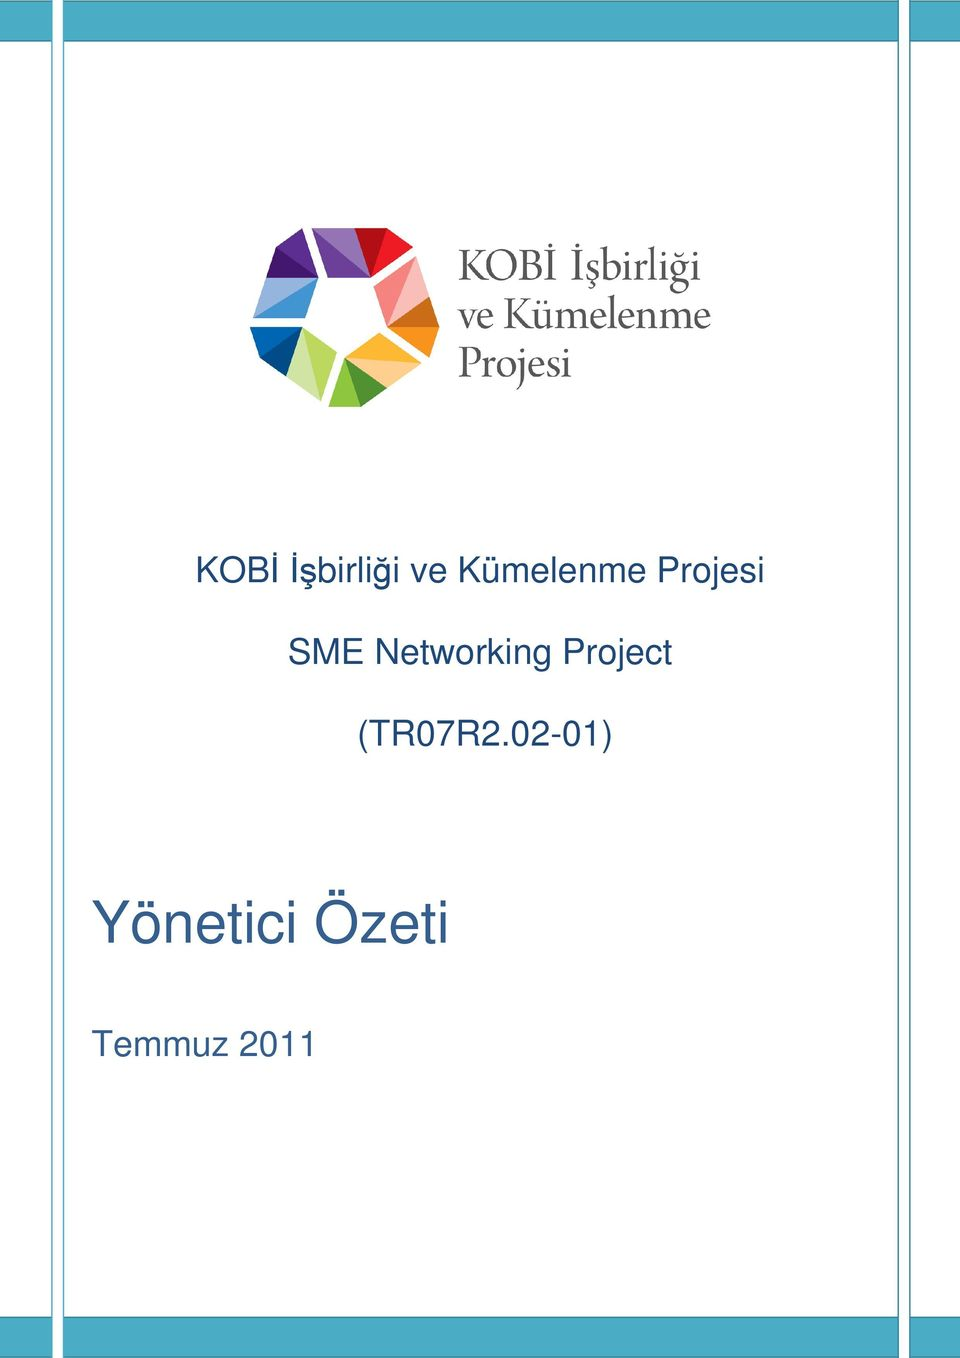 Networking Project